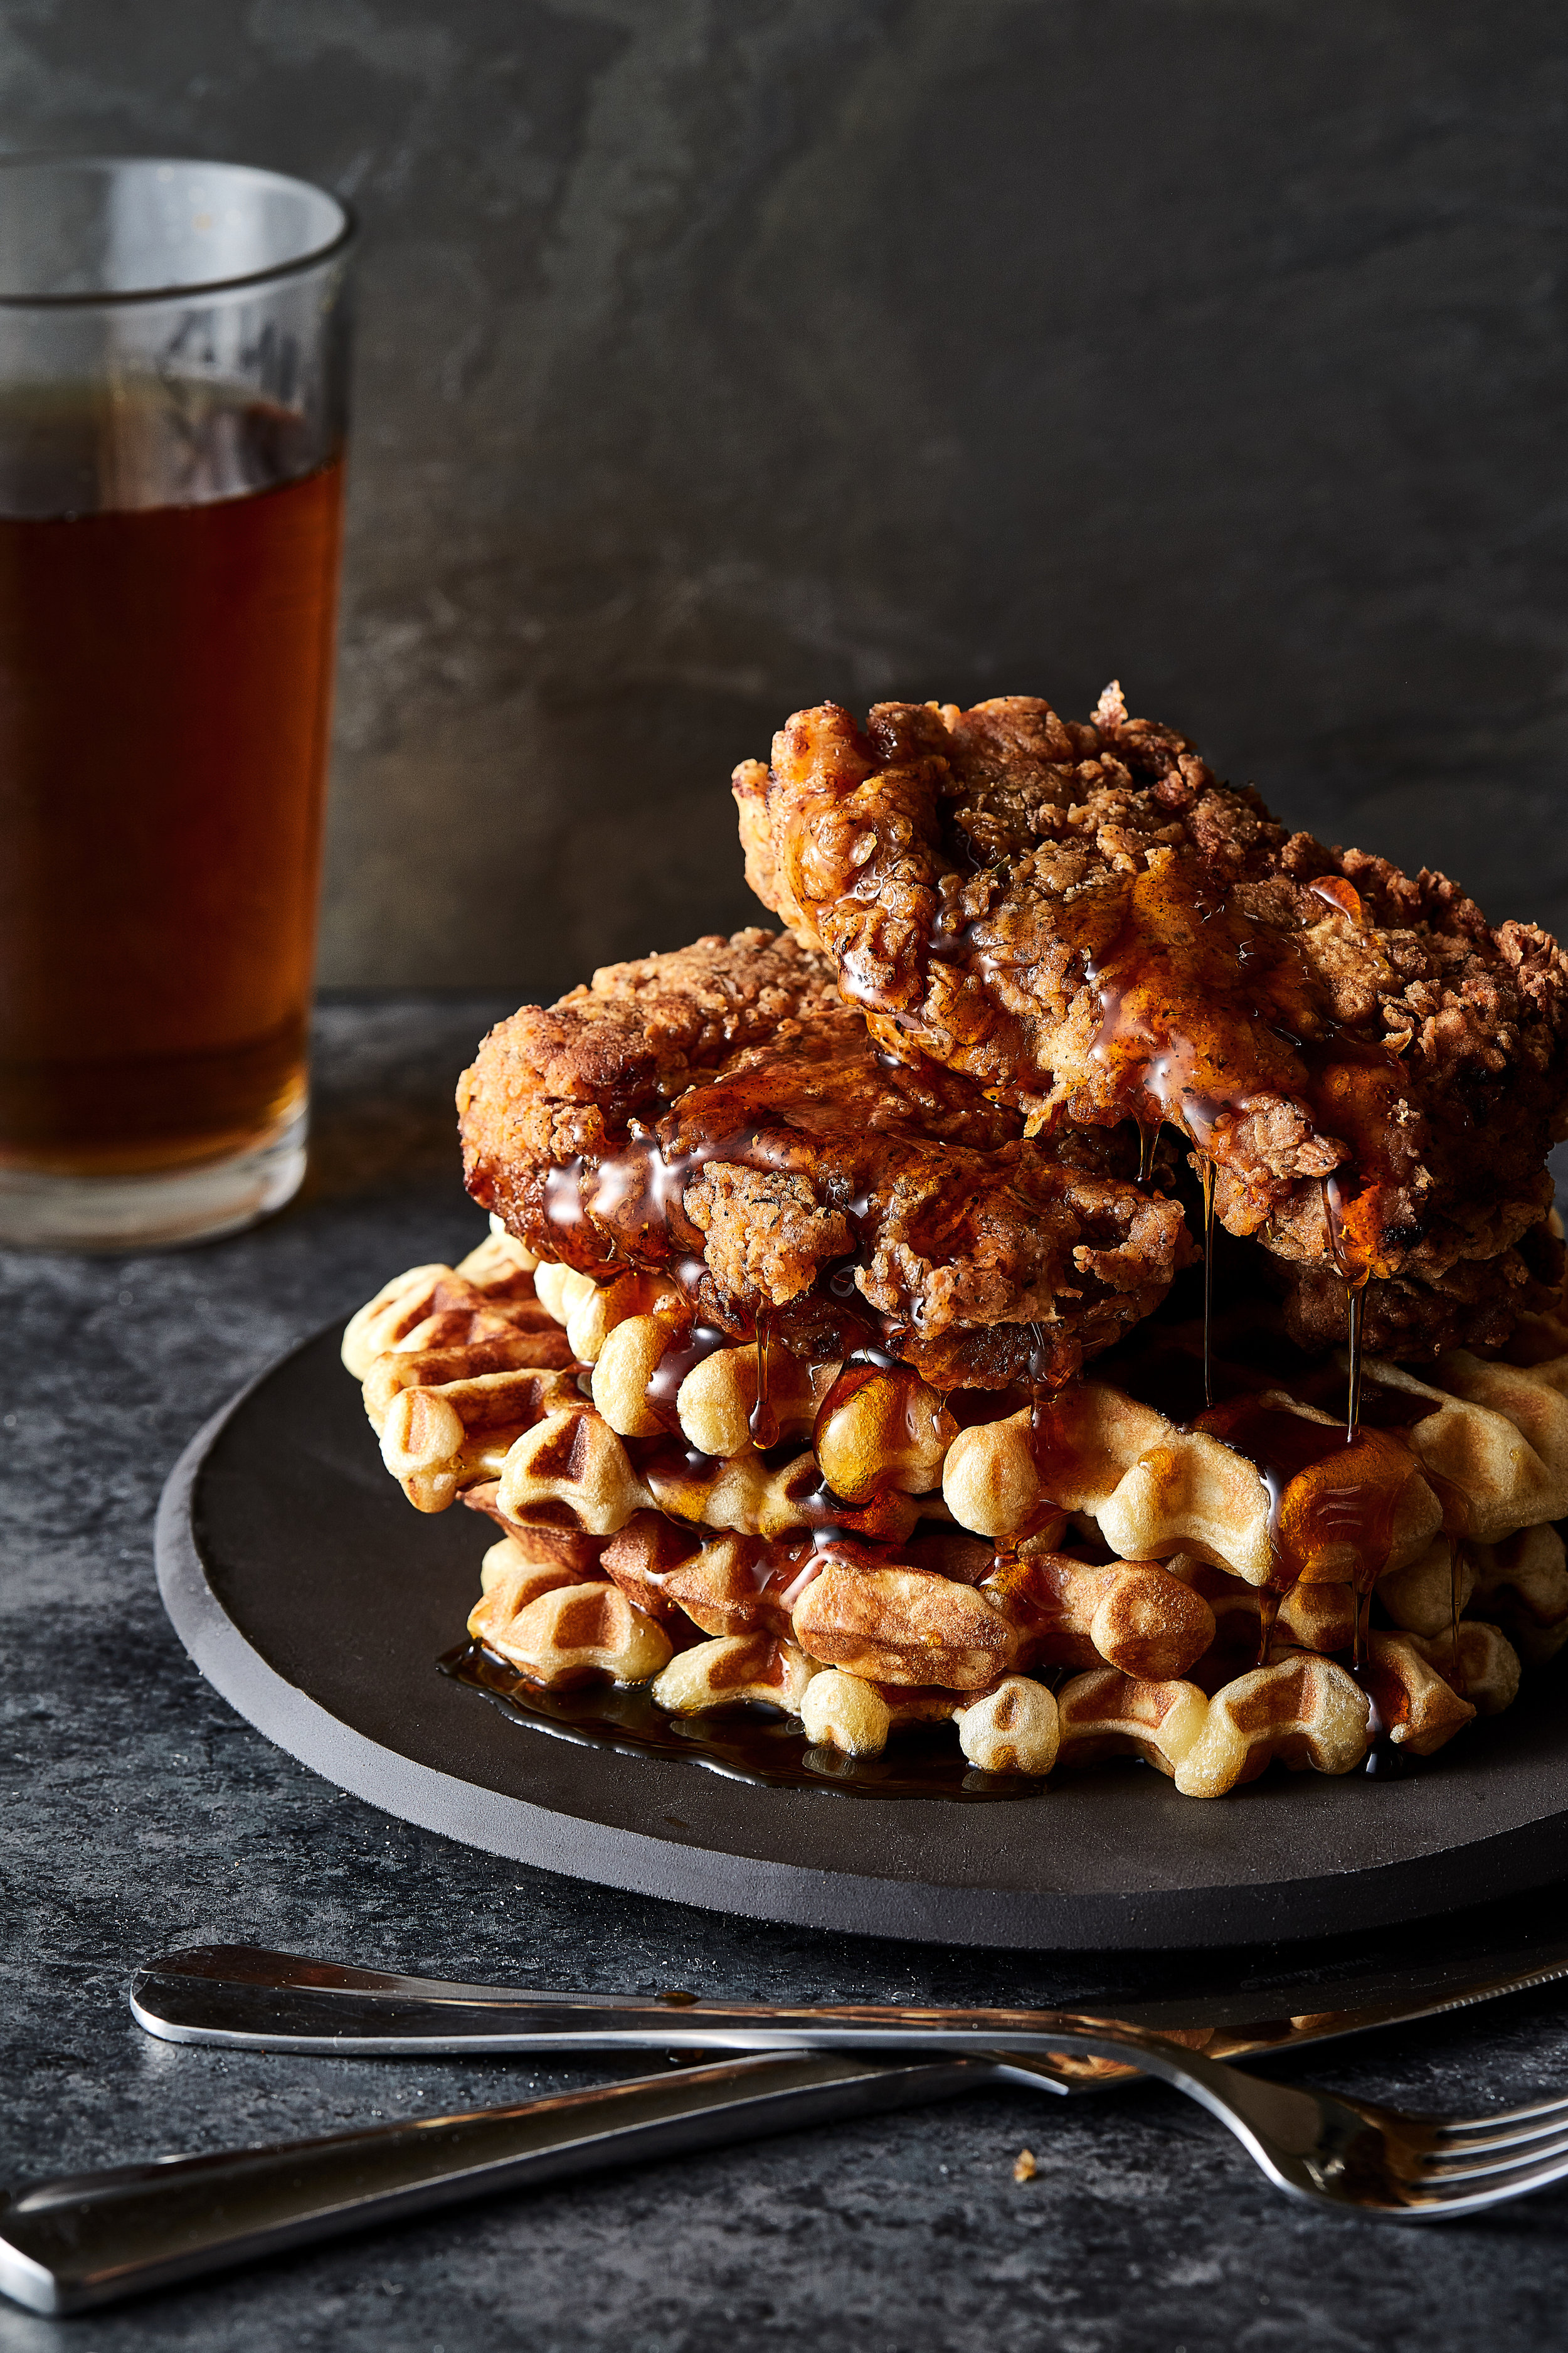 chicken-and-waffles-food-photographer-los-angeles.jpg